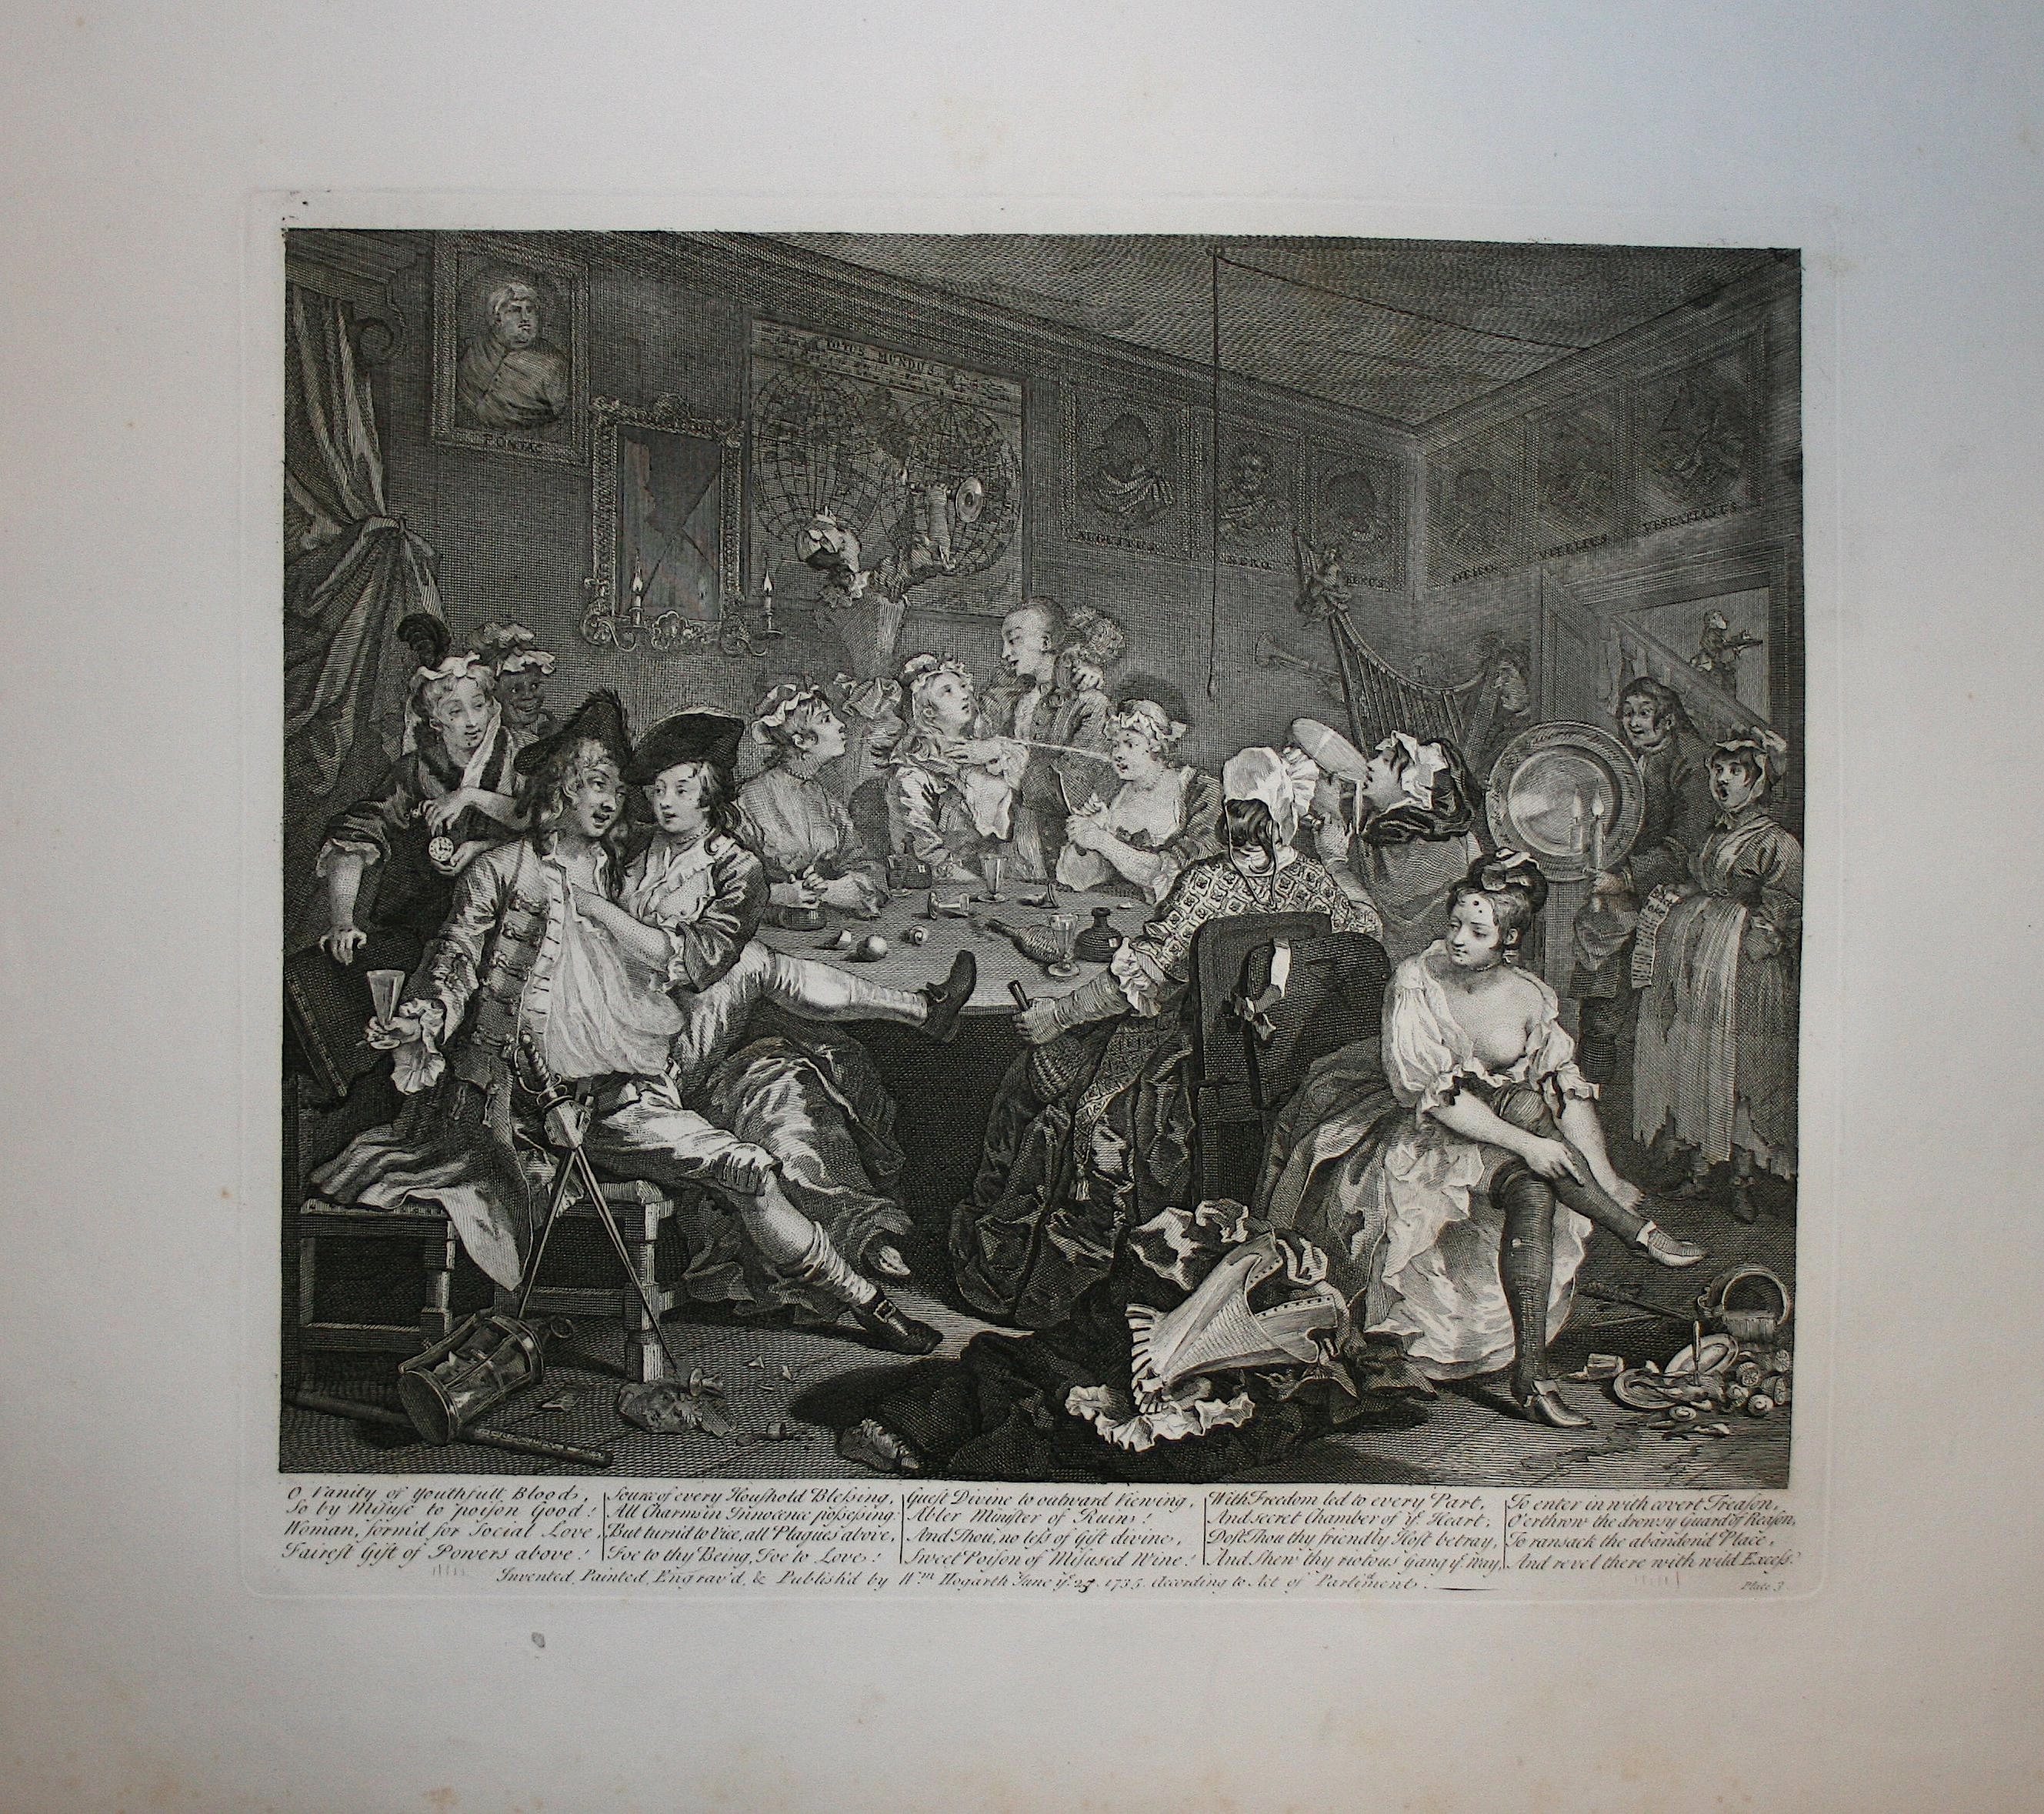 La carriera del libertino - Tav. III Hogarth / Heath 1822